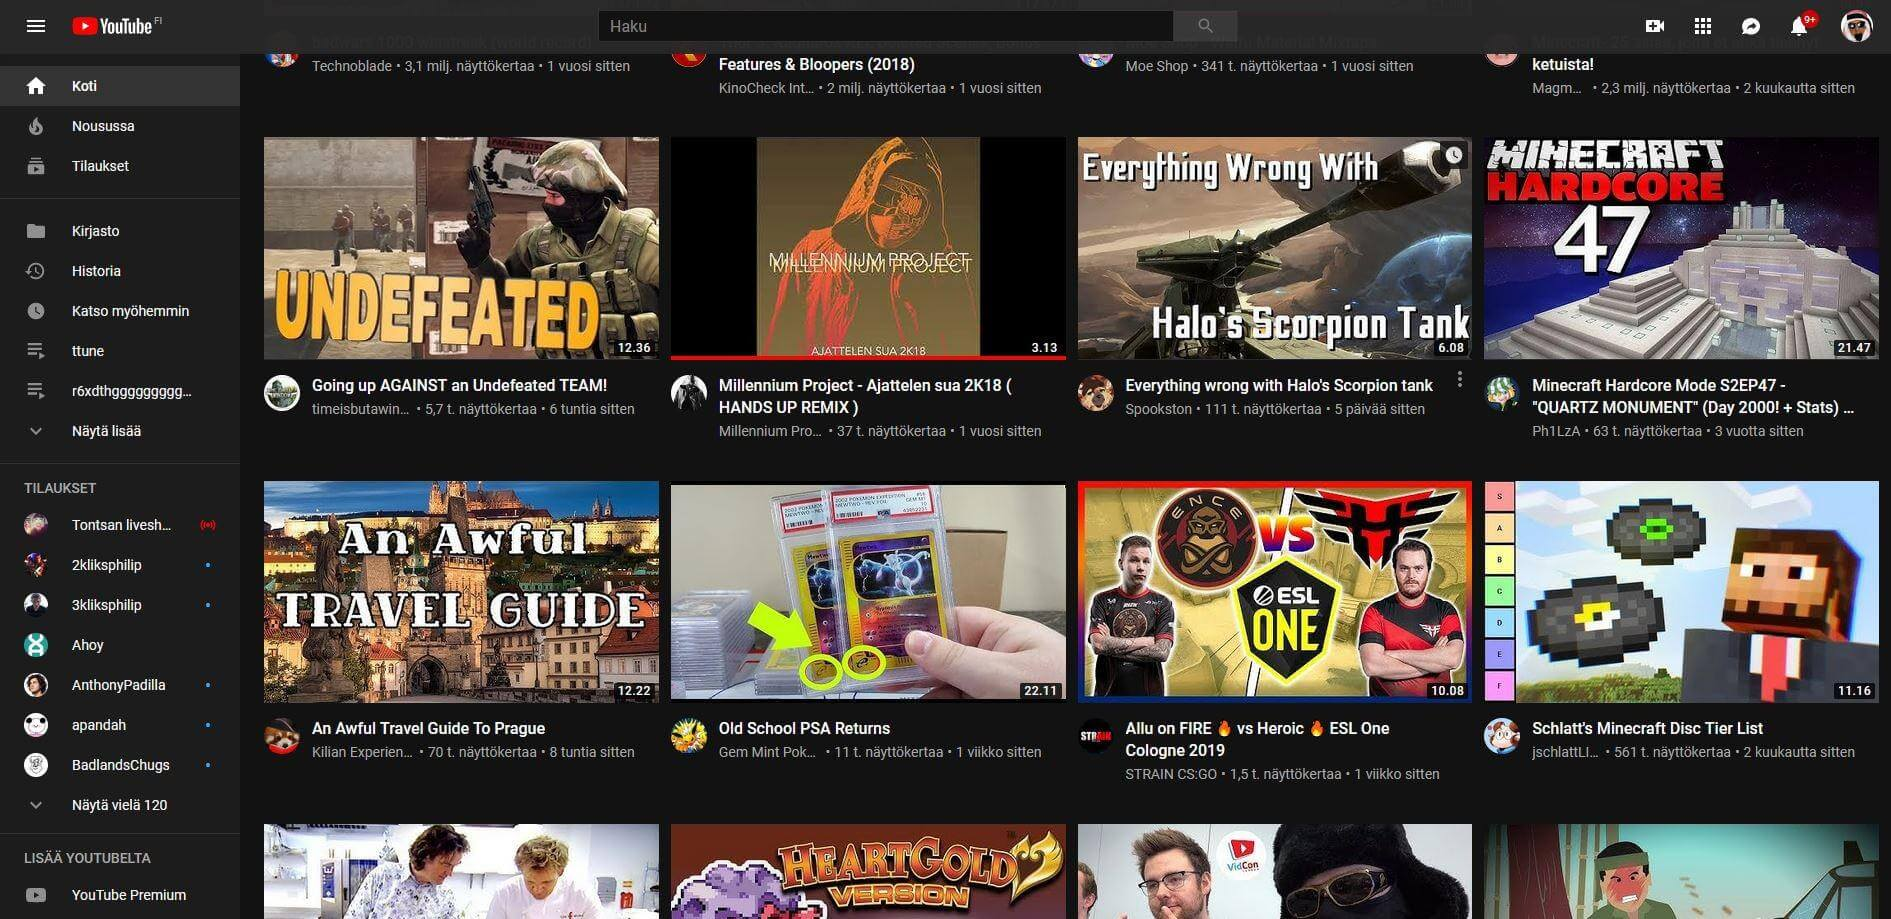 The Internet reacts: YouTube's big thumbnail layout looks